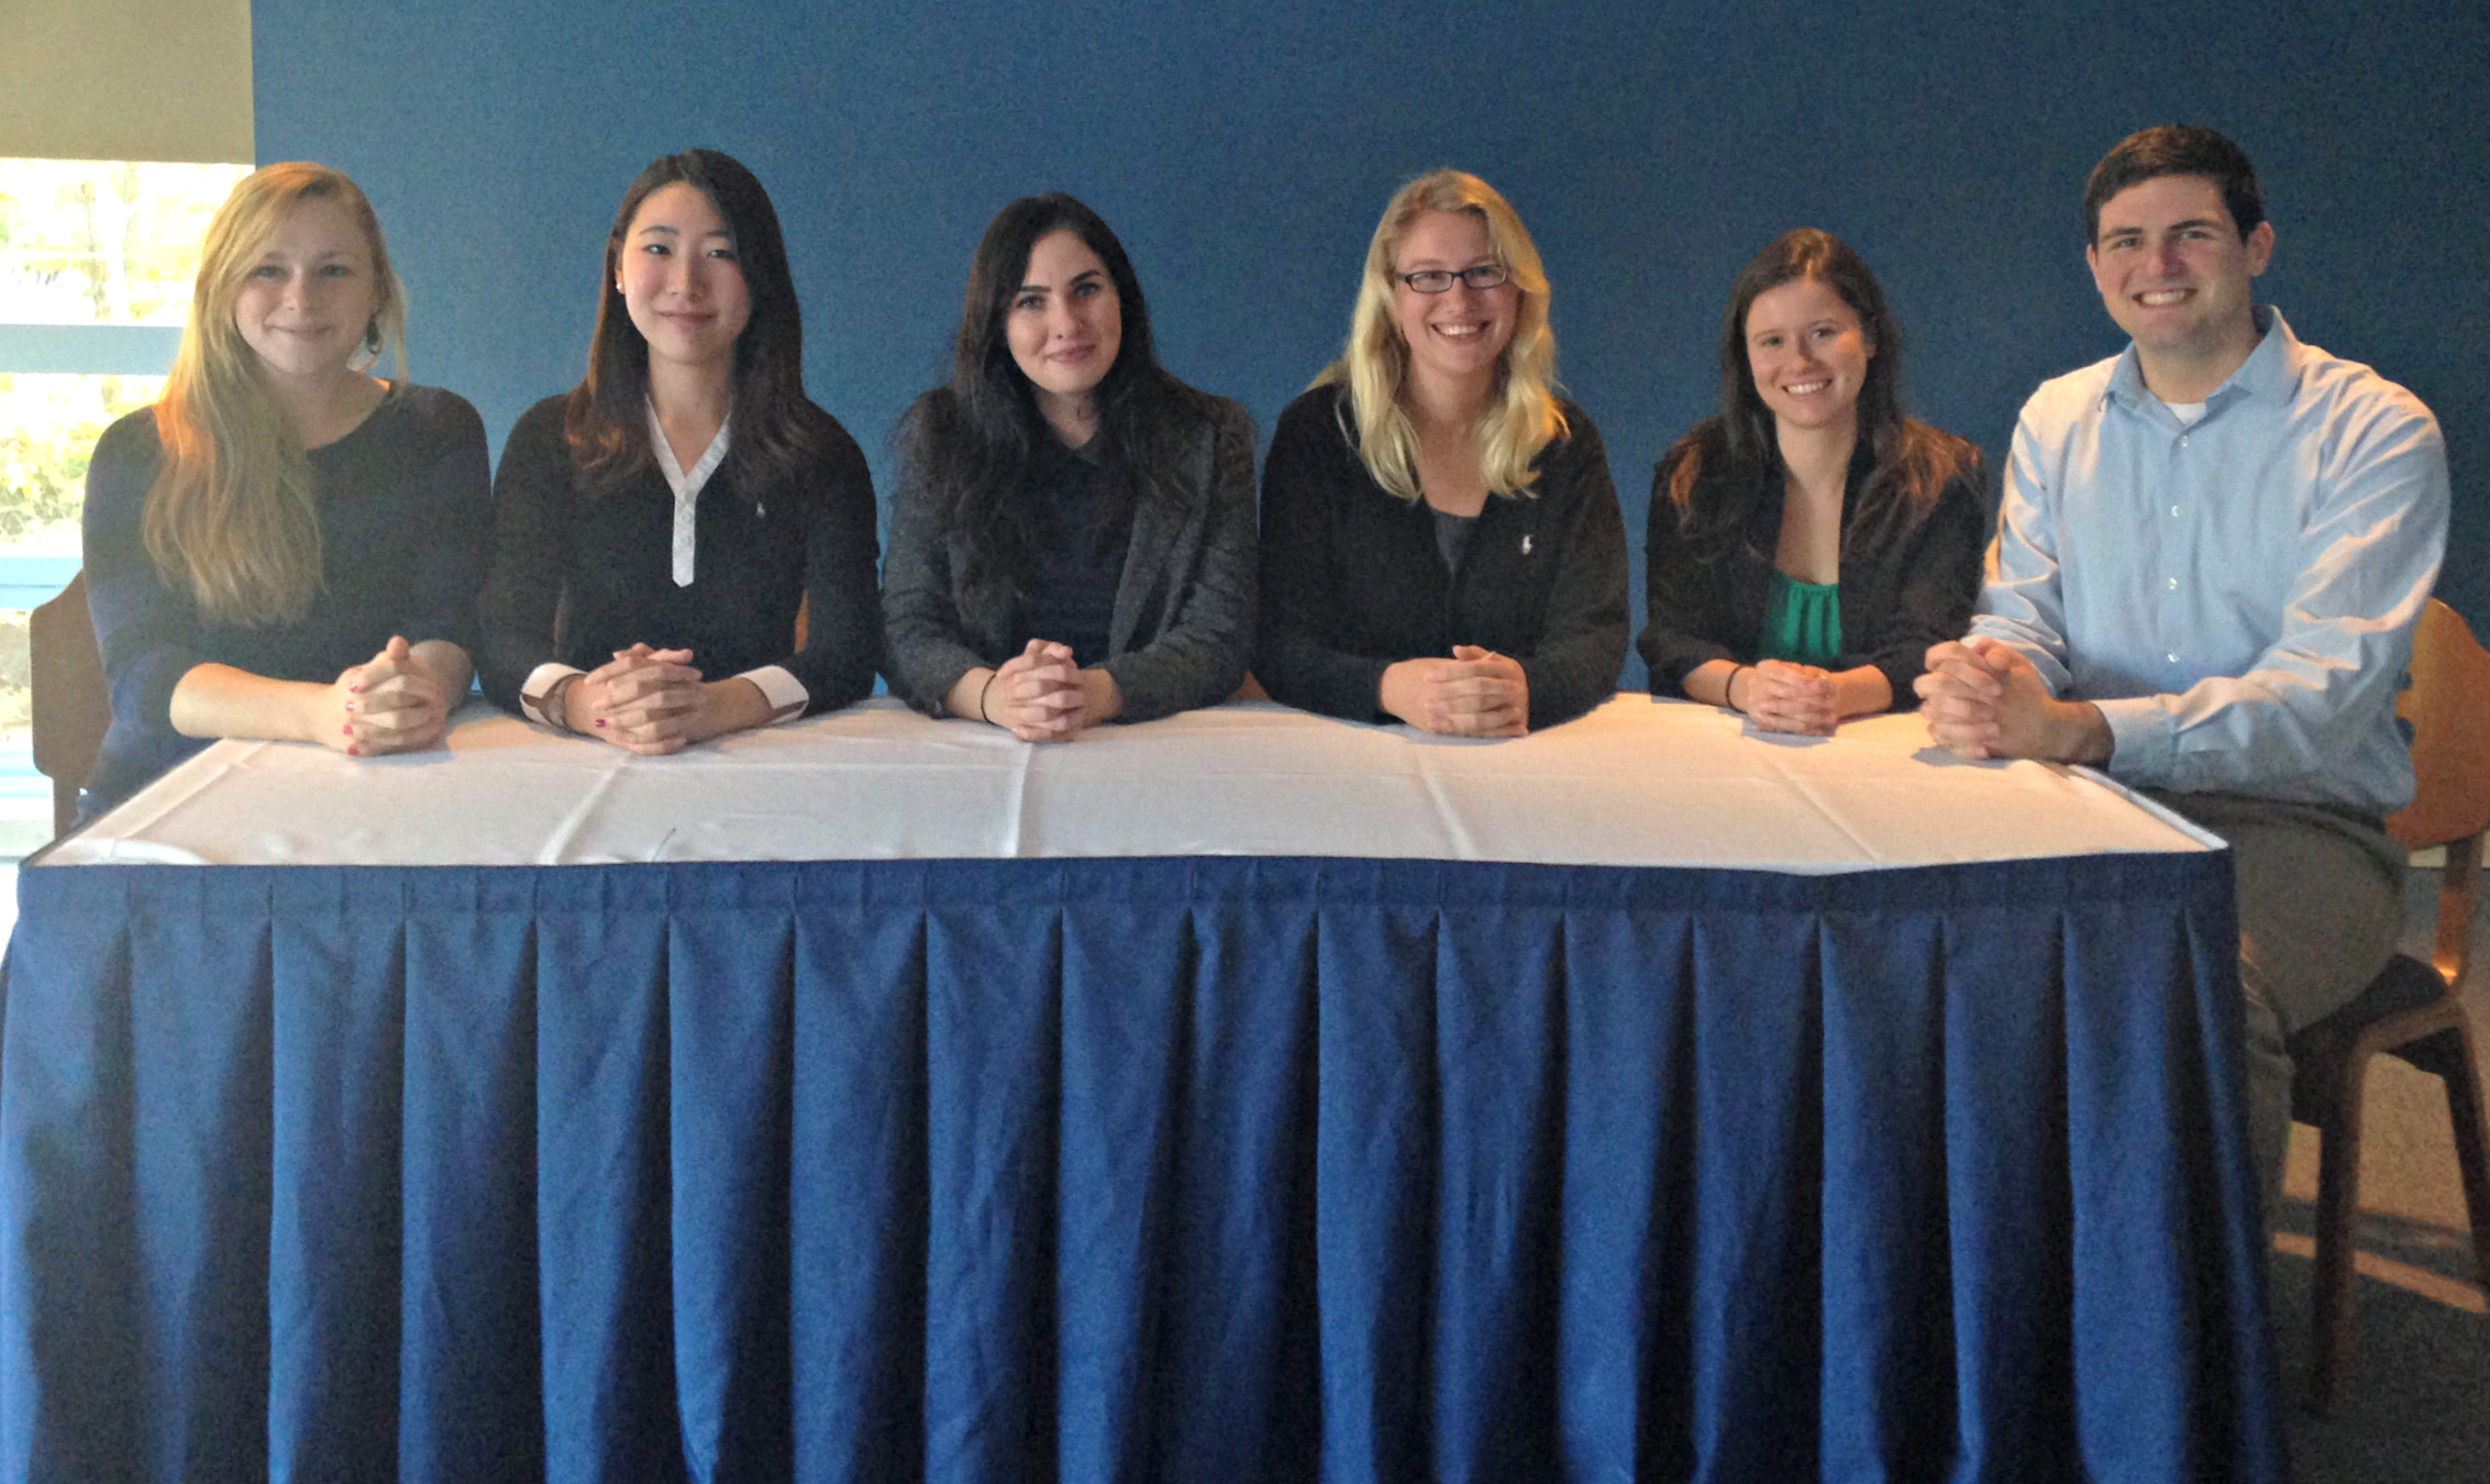 Photo from the Fall 2014 induction ceremony for the college's chapter of Psi Chi National Honor Society in Psychology